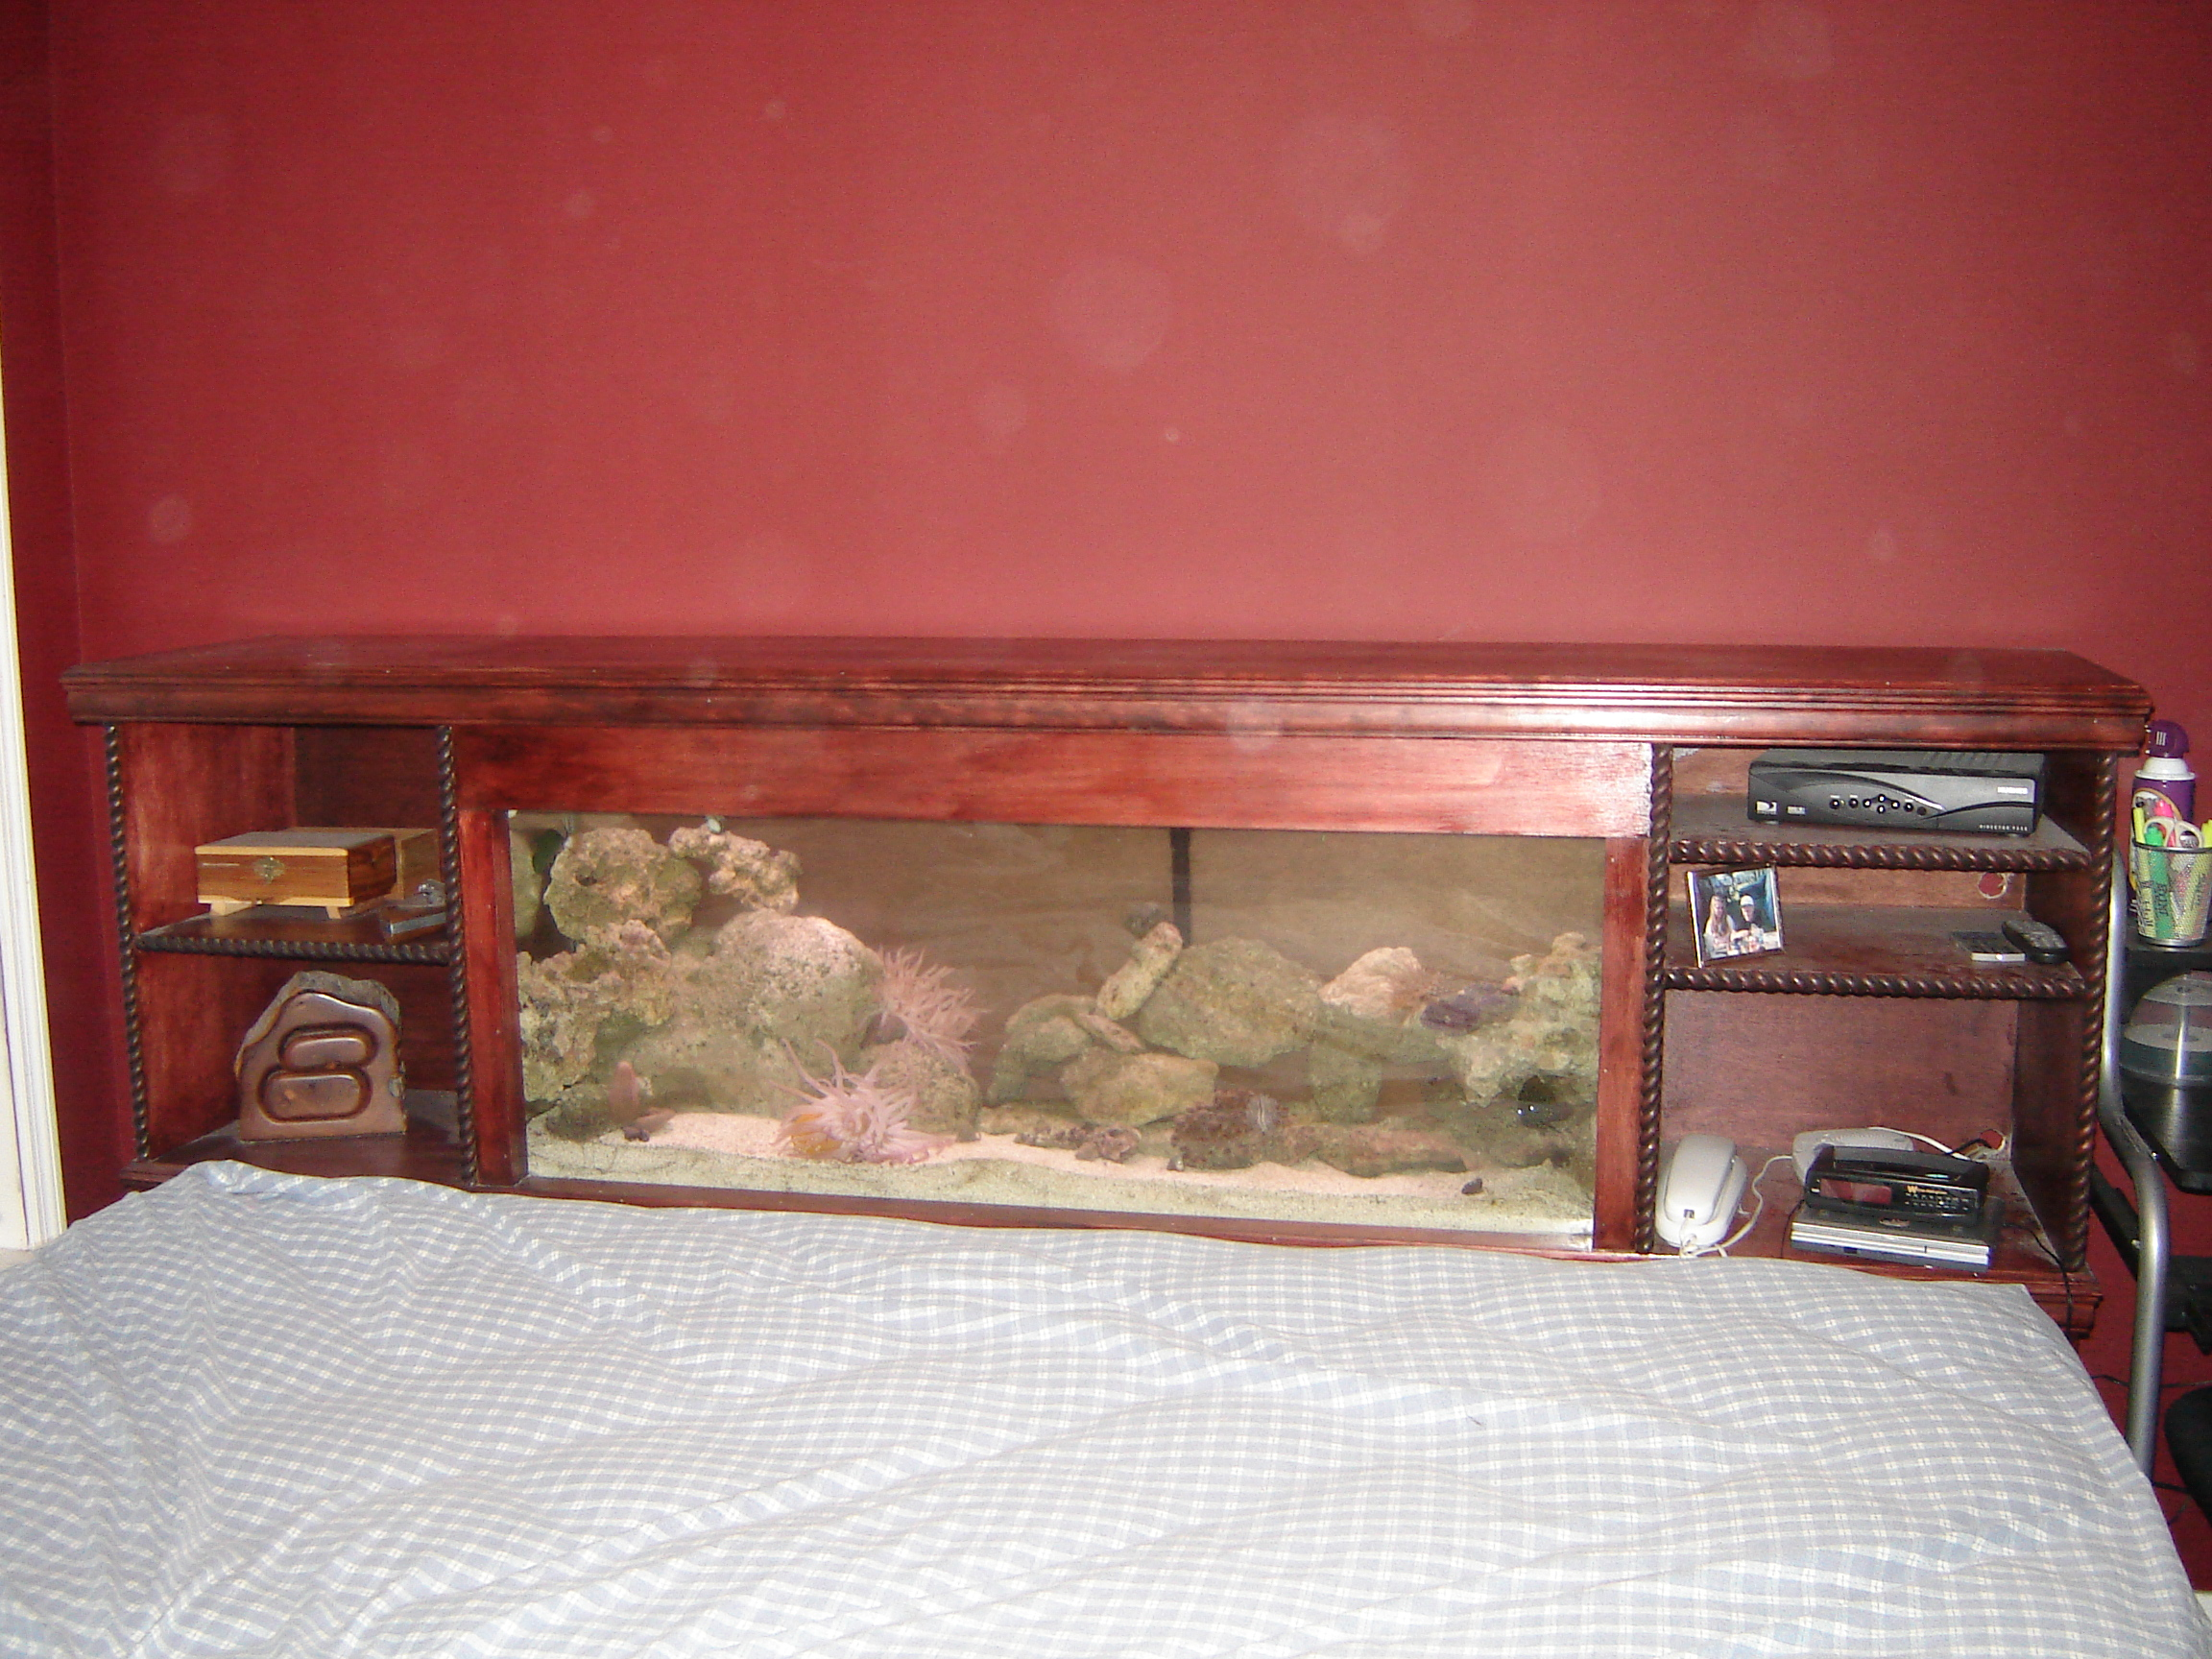 Fish aquarium bed frame - Hang On Wall Fish Tanks